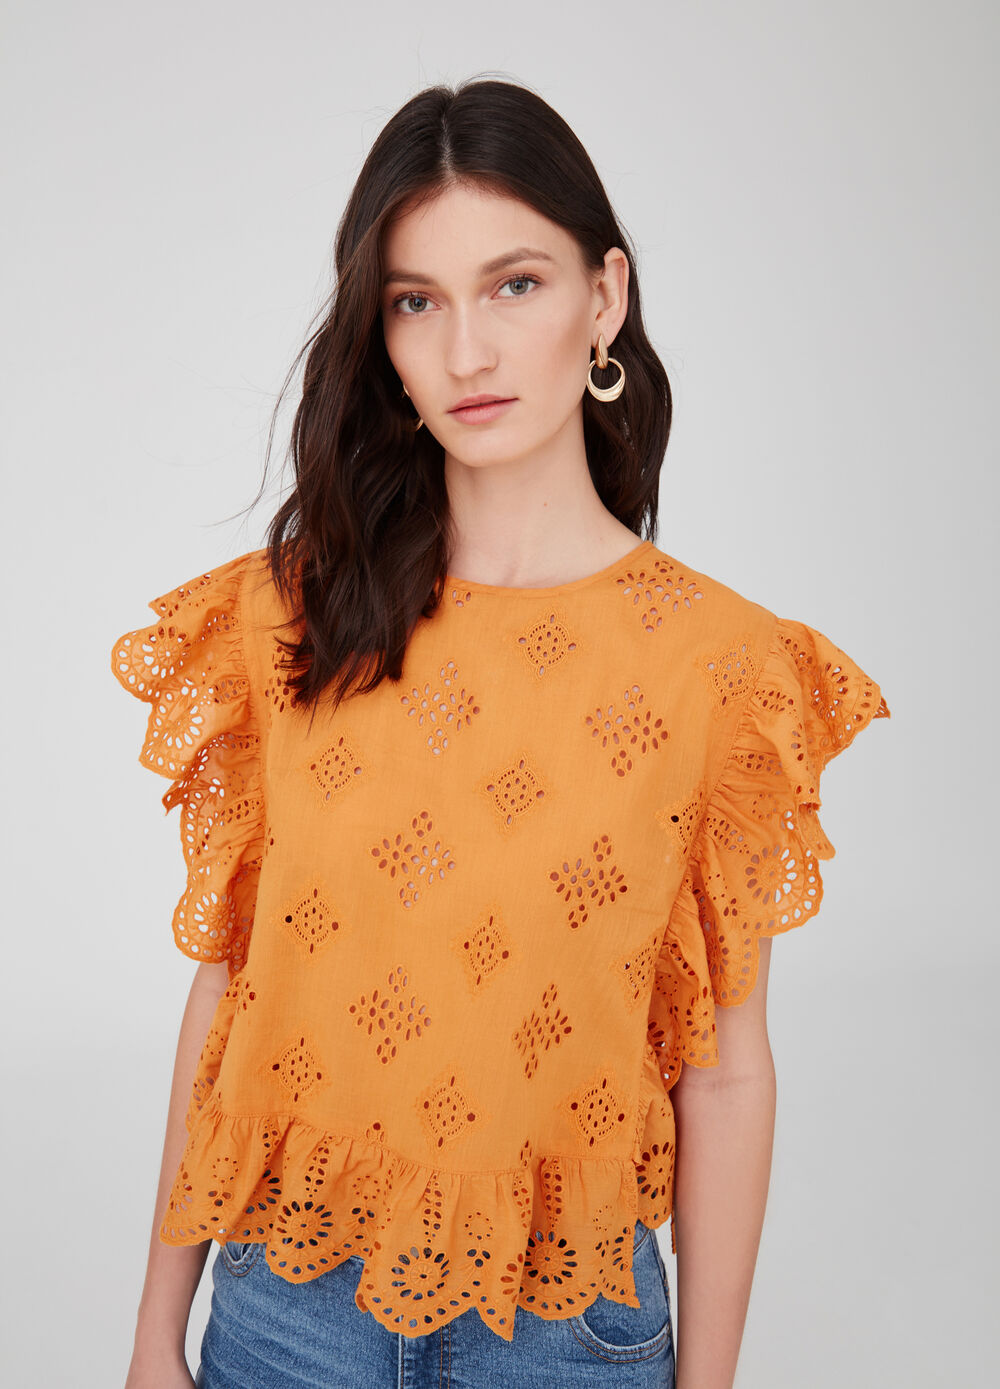 Openwork sleeveless shirt with flounce